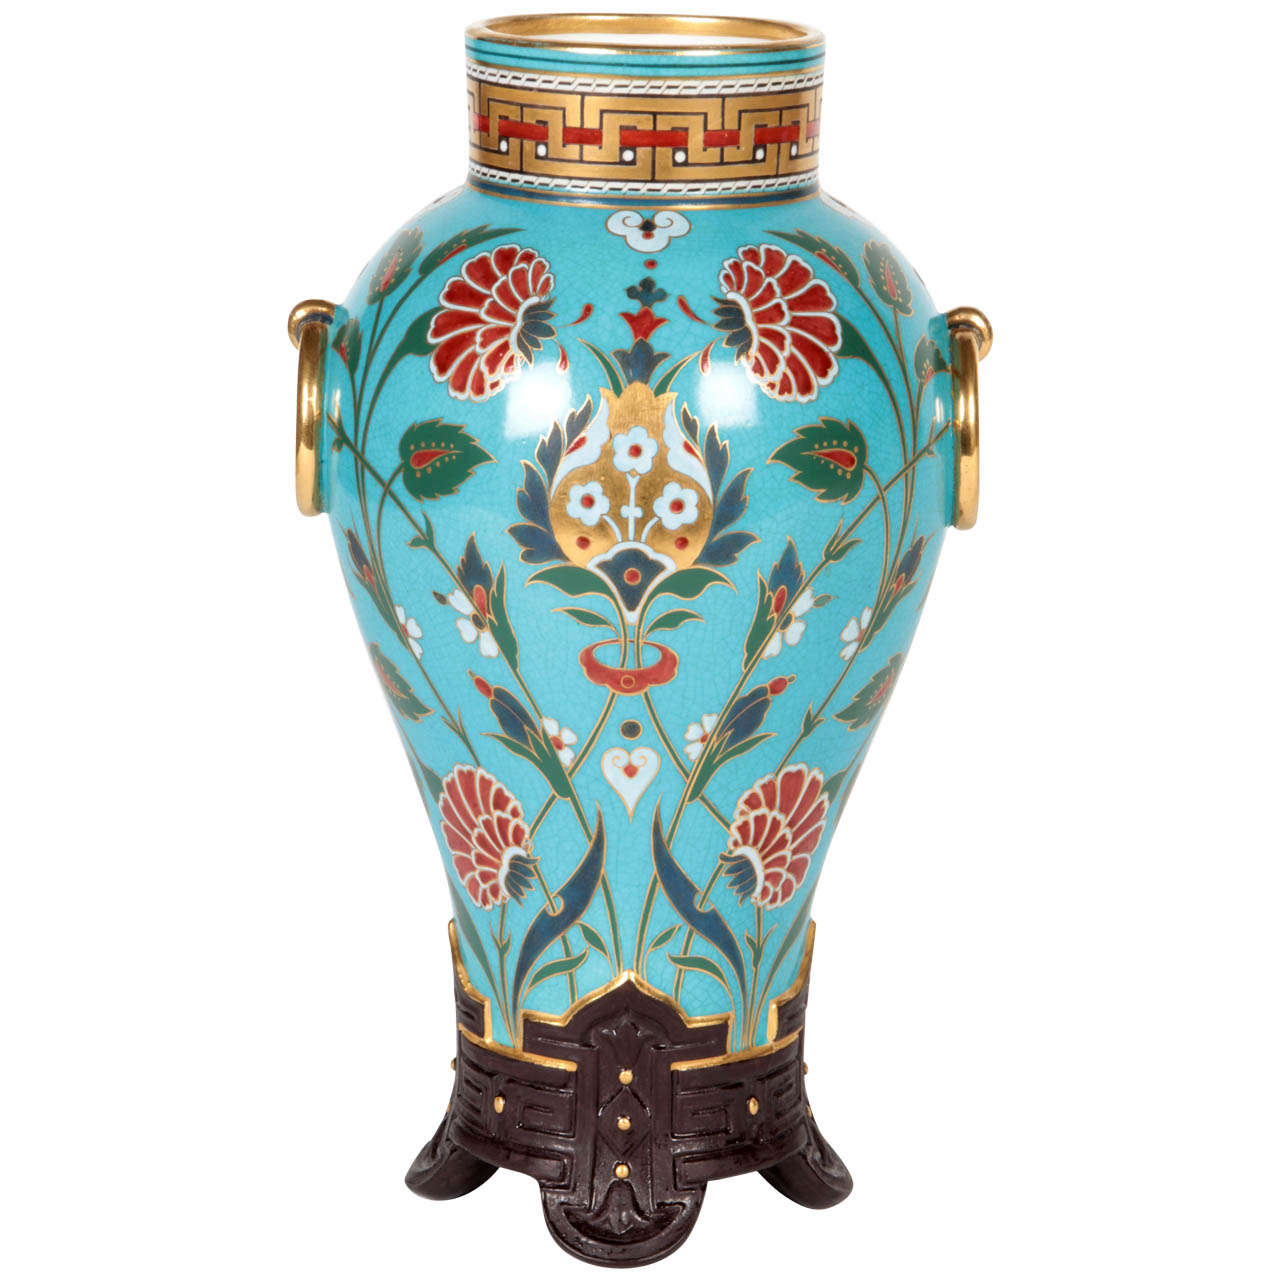 christopher dresser minton aesthetic movement cloisonn vase 1867 at 1stdibs. Black Bedroom Furniture Sets. Home Design Ideas